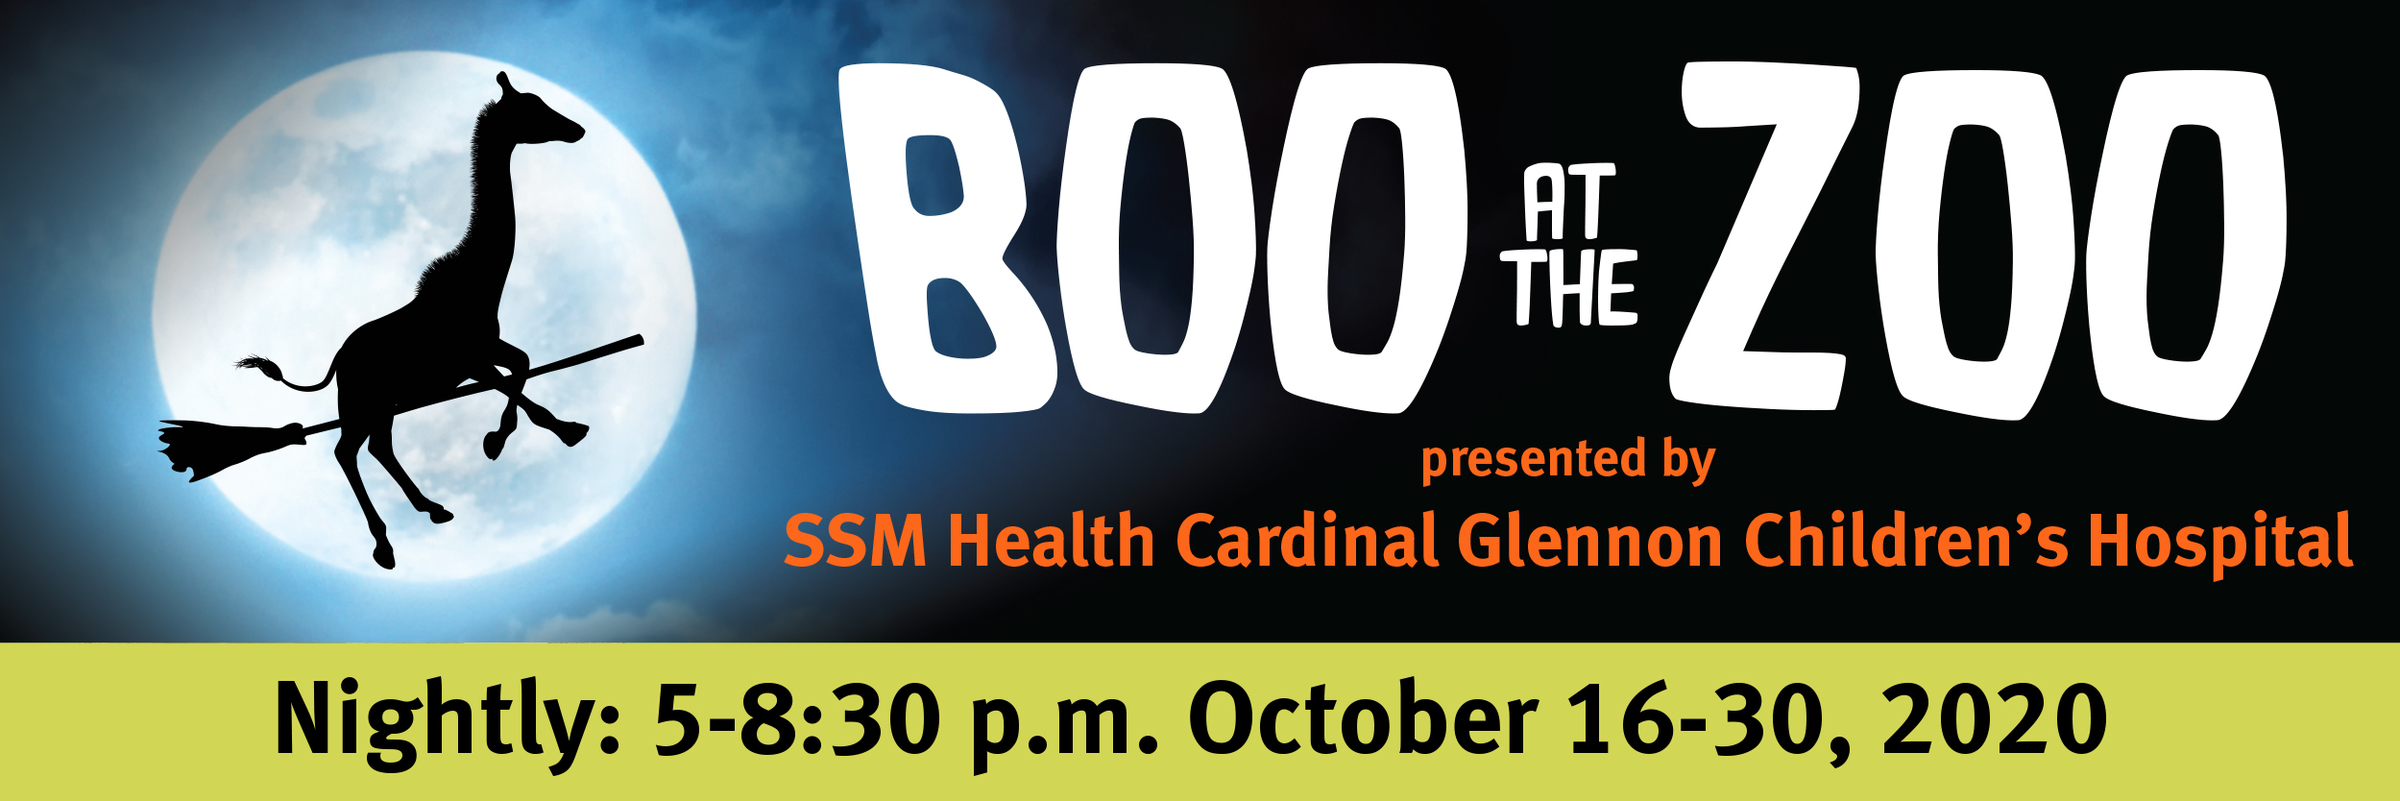 Halloween Events In St. Louis Missouri 2020 Boo at the Zoo presented by SSM Health Cardinal Glennon Children's